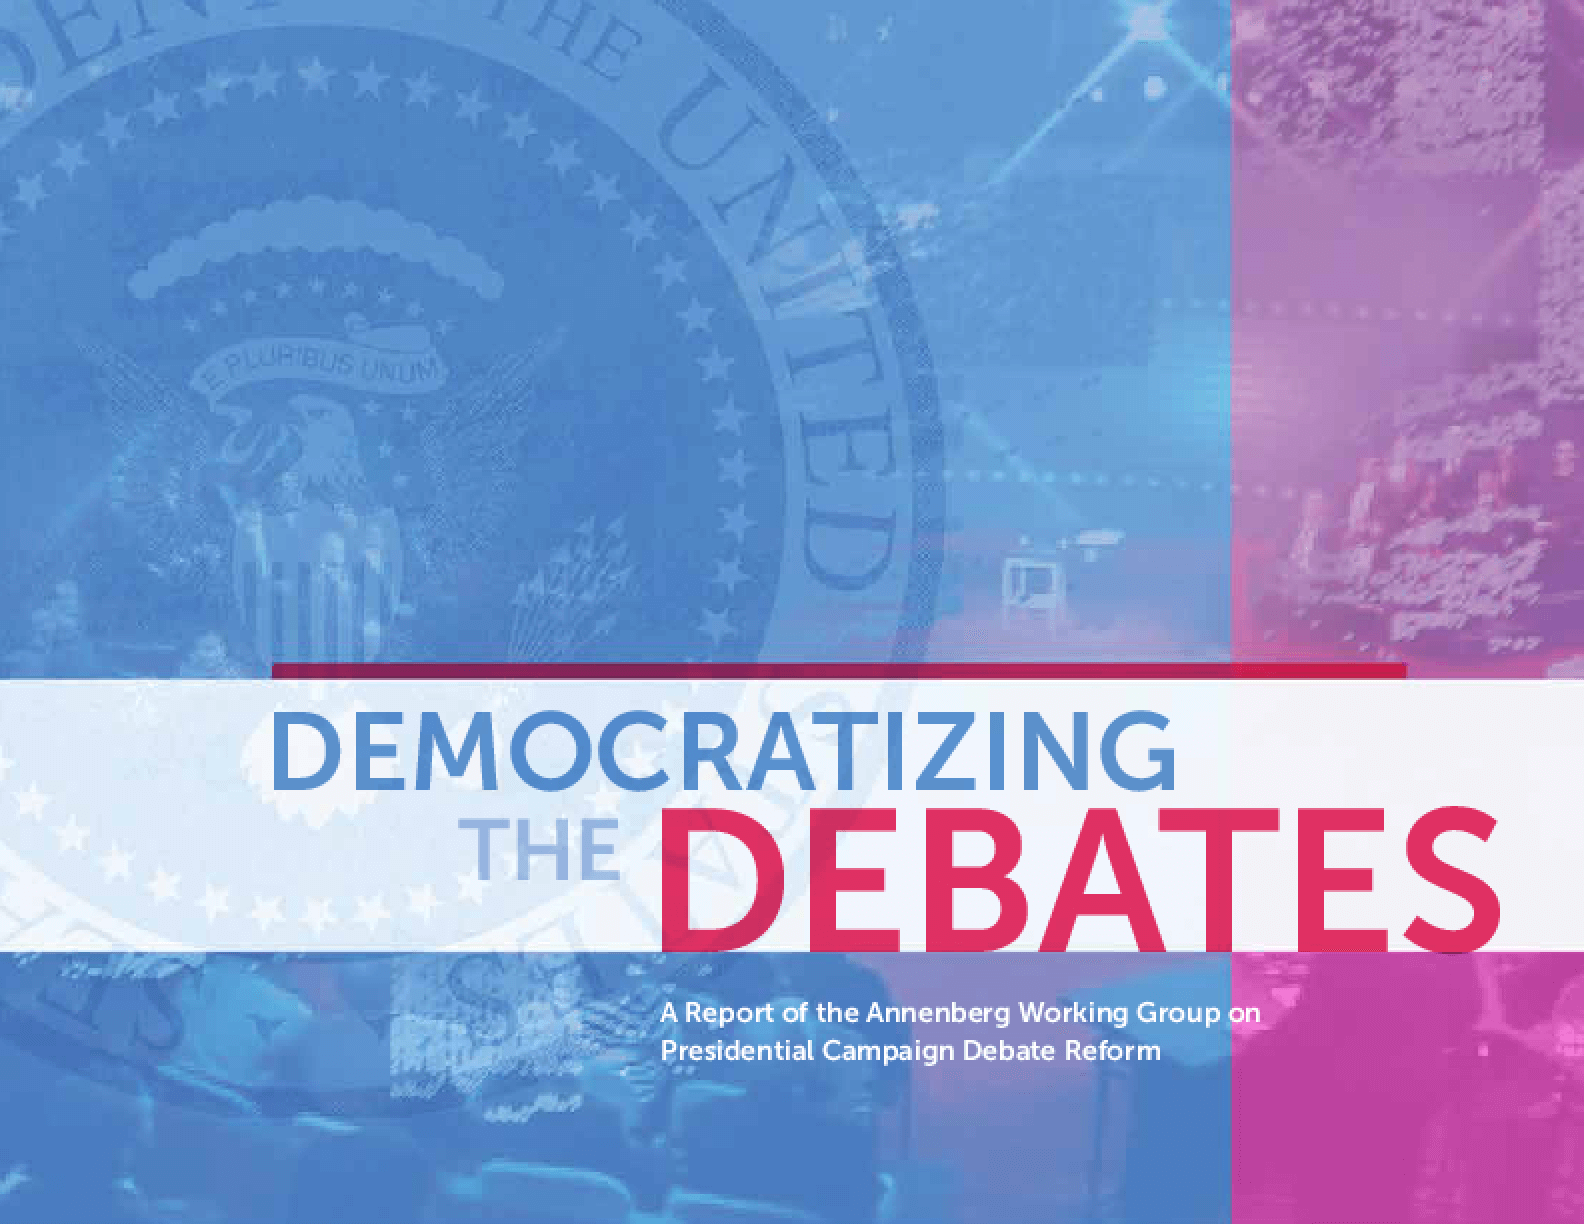 Democratizing The Debates: A Report of the Annenberg Working Group on Presidential Campaign Debate Reform